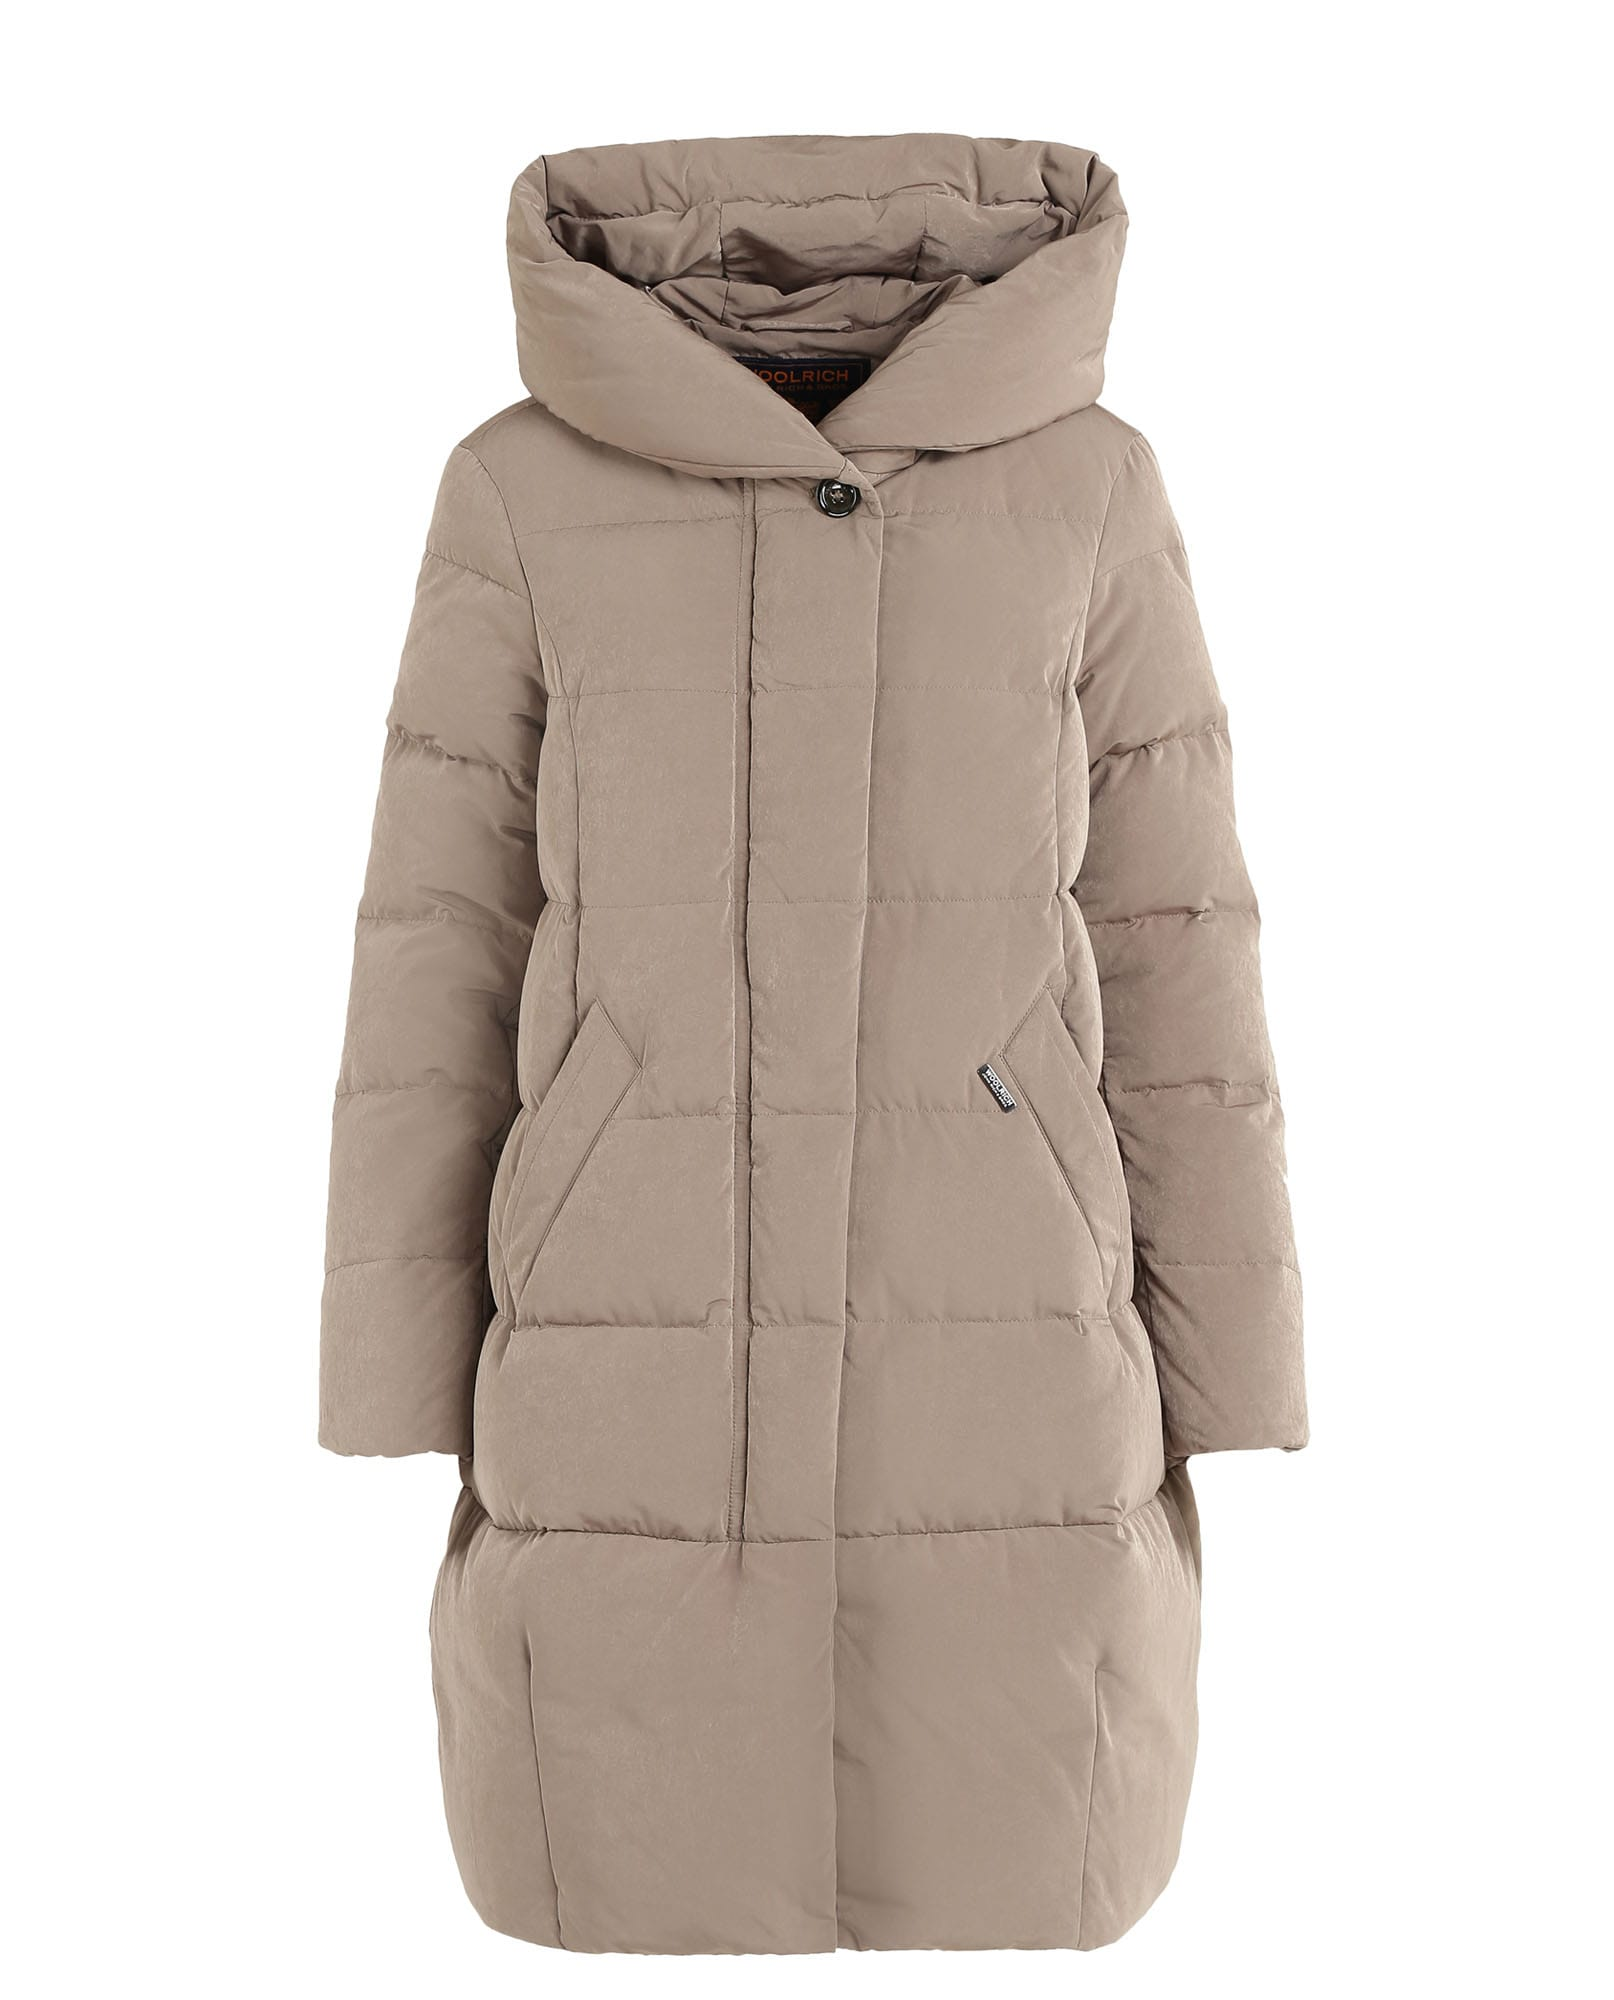 PUFFY COCOON COAT